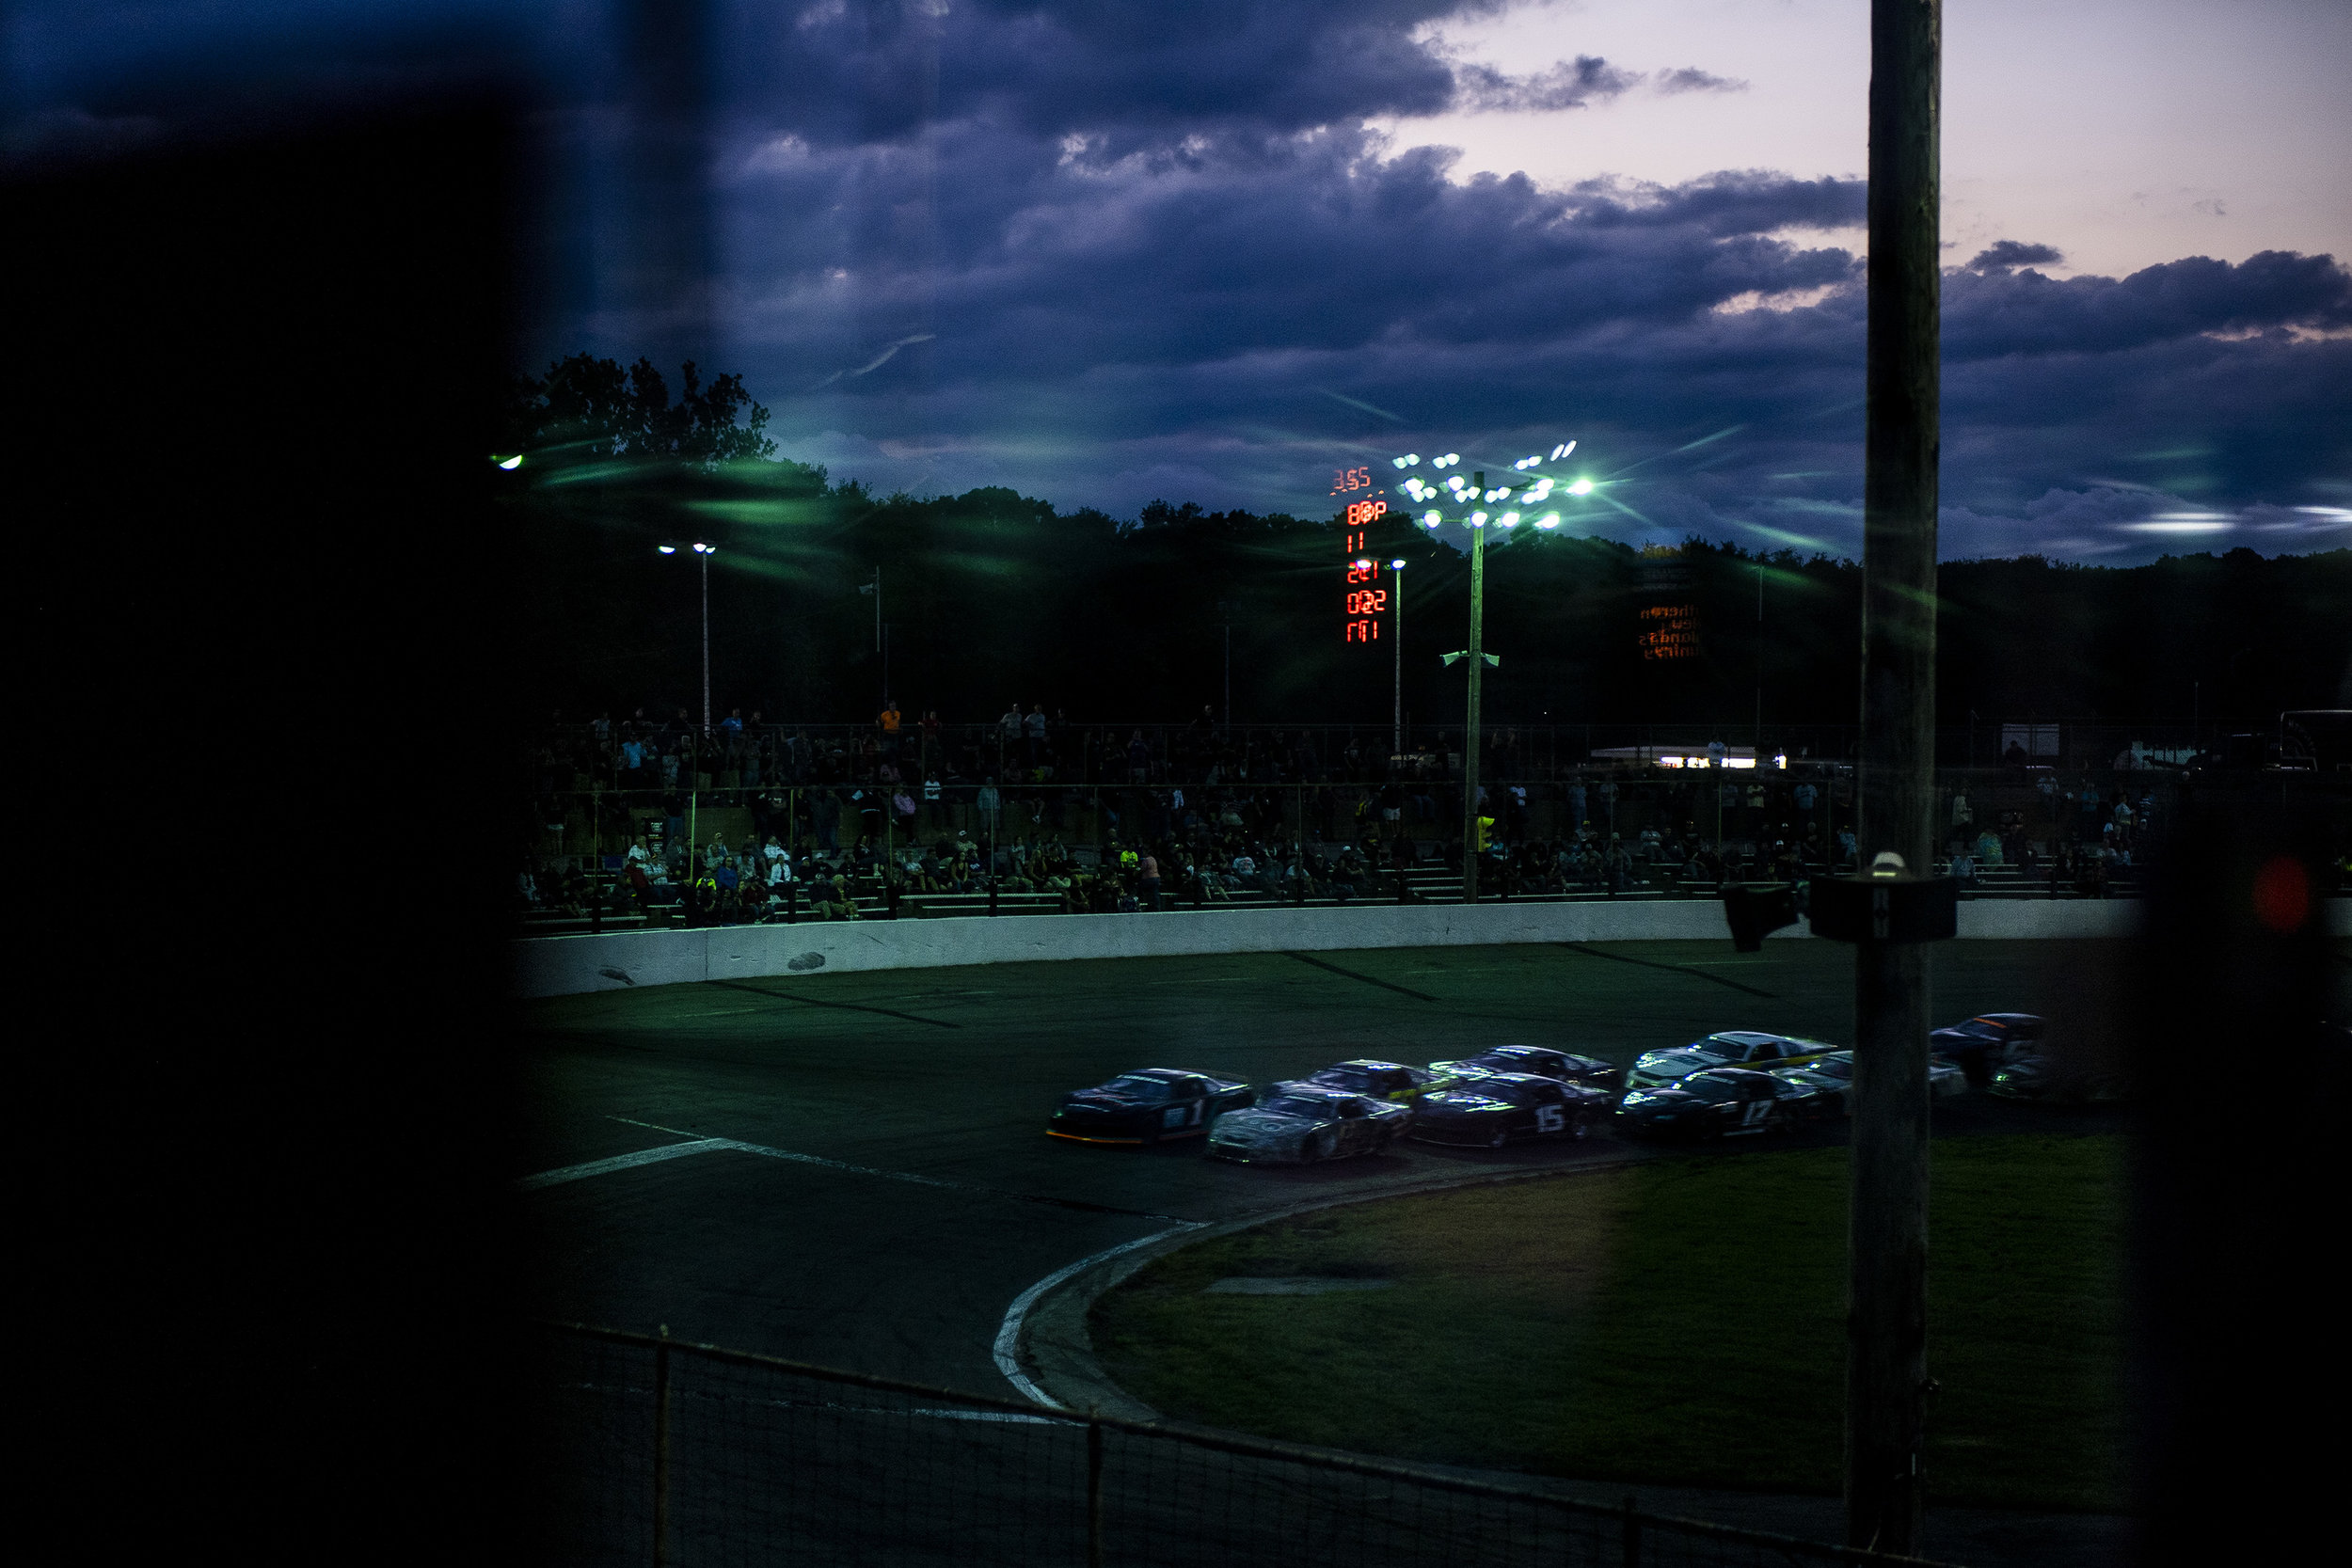 SEEKONK, MA - June 2: at Seekonk Speedway on June 2, 2018 in Seekonk, Massachusetts.  (Matthew Thomas/NASCAR)